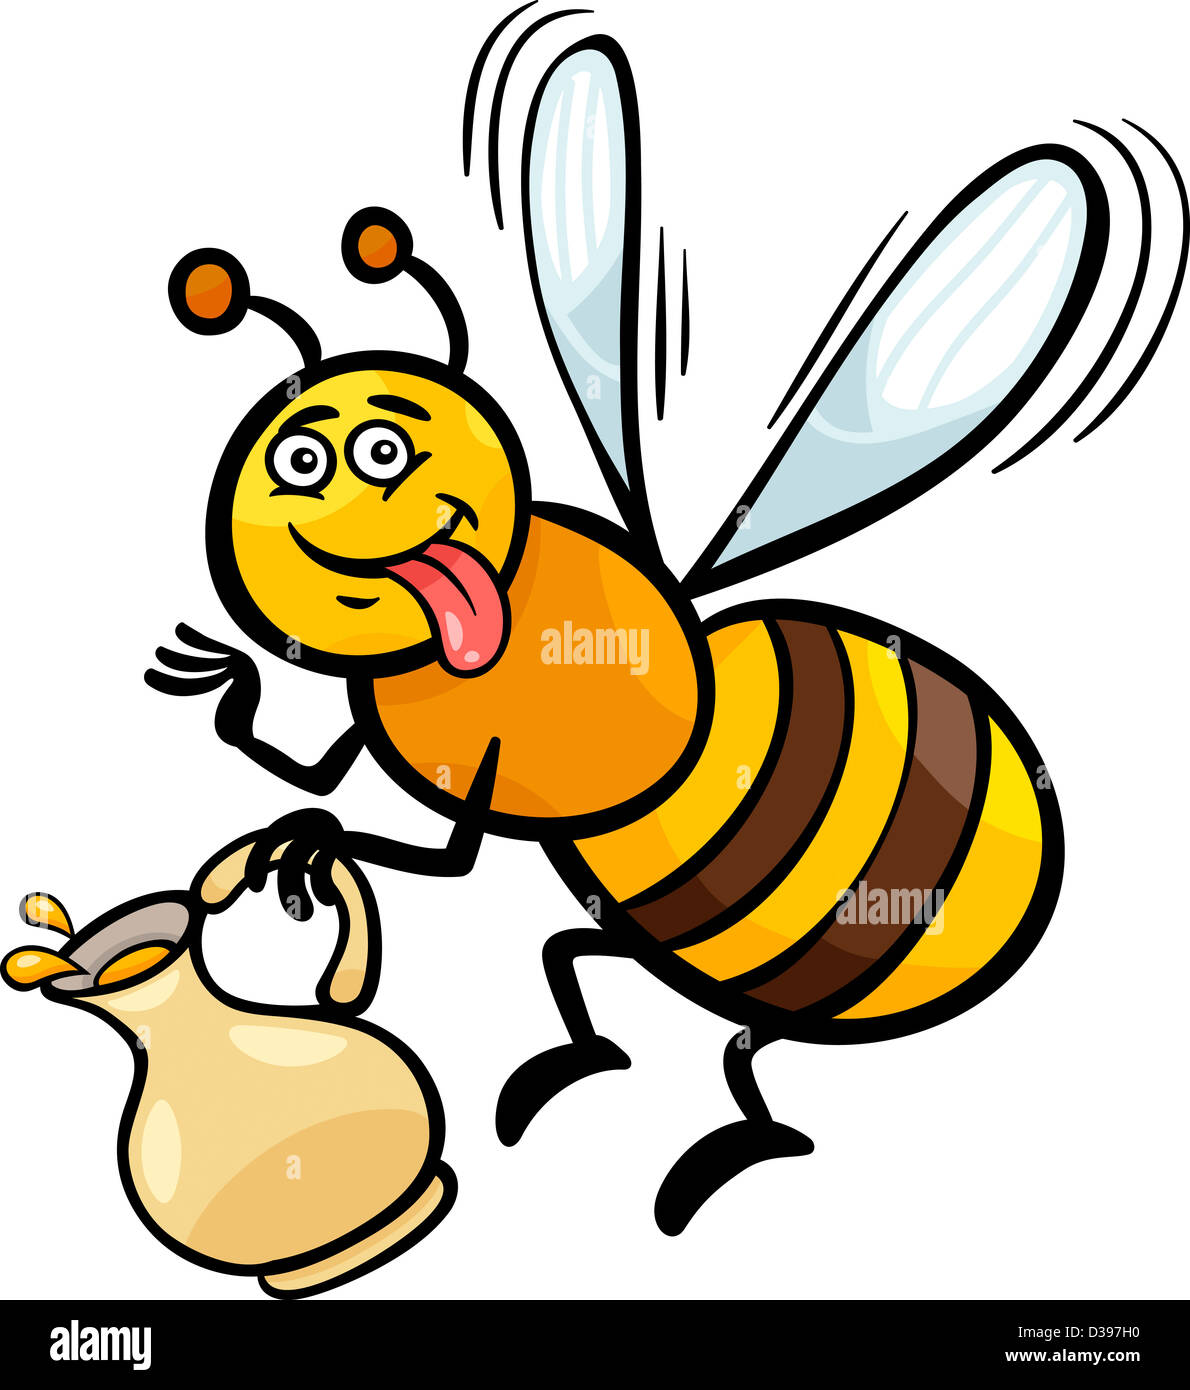 Cartoon Illustration Of Funny Bee With Pot Of Honey Or Nectar Stock